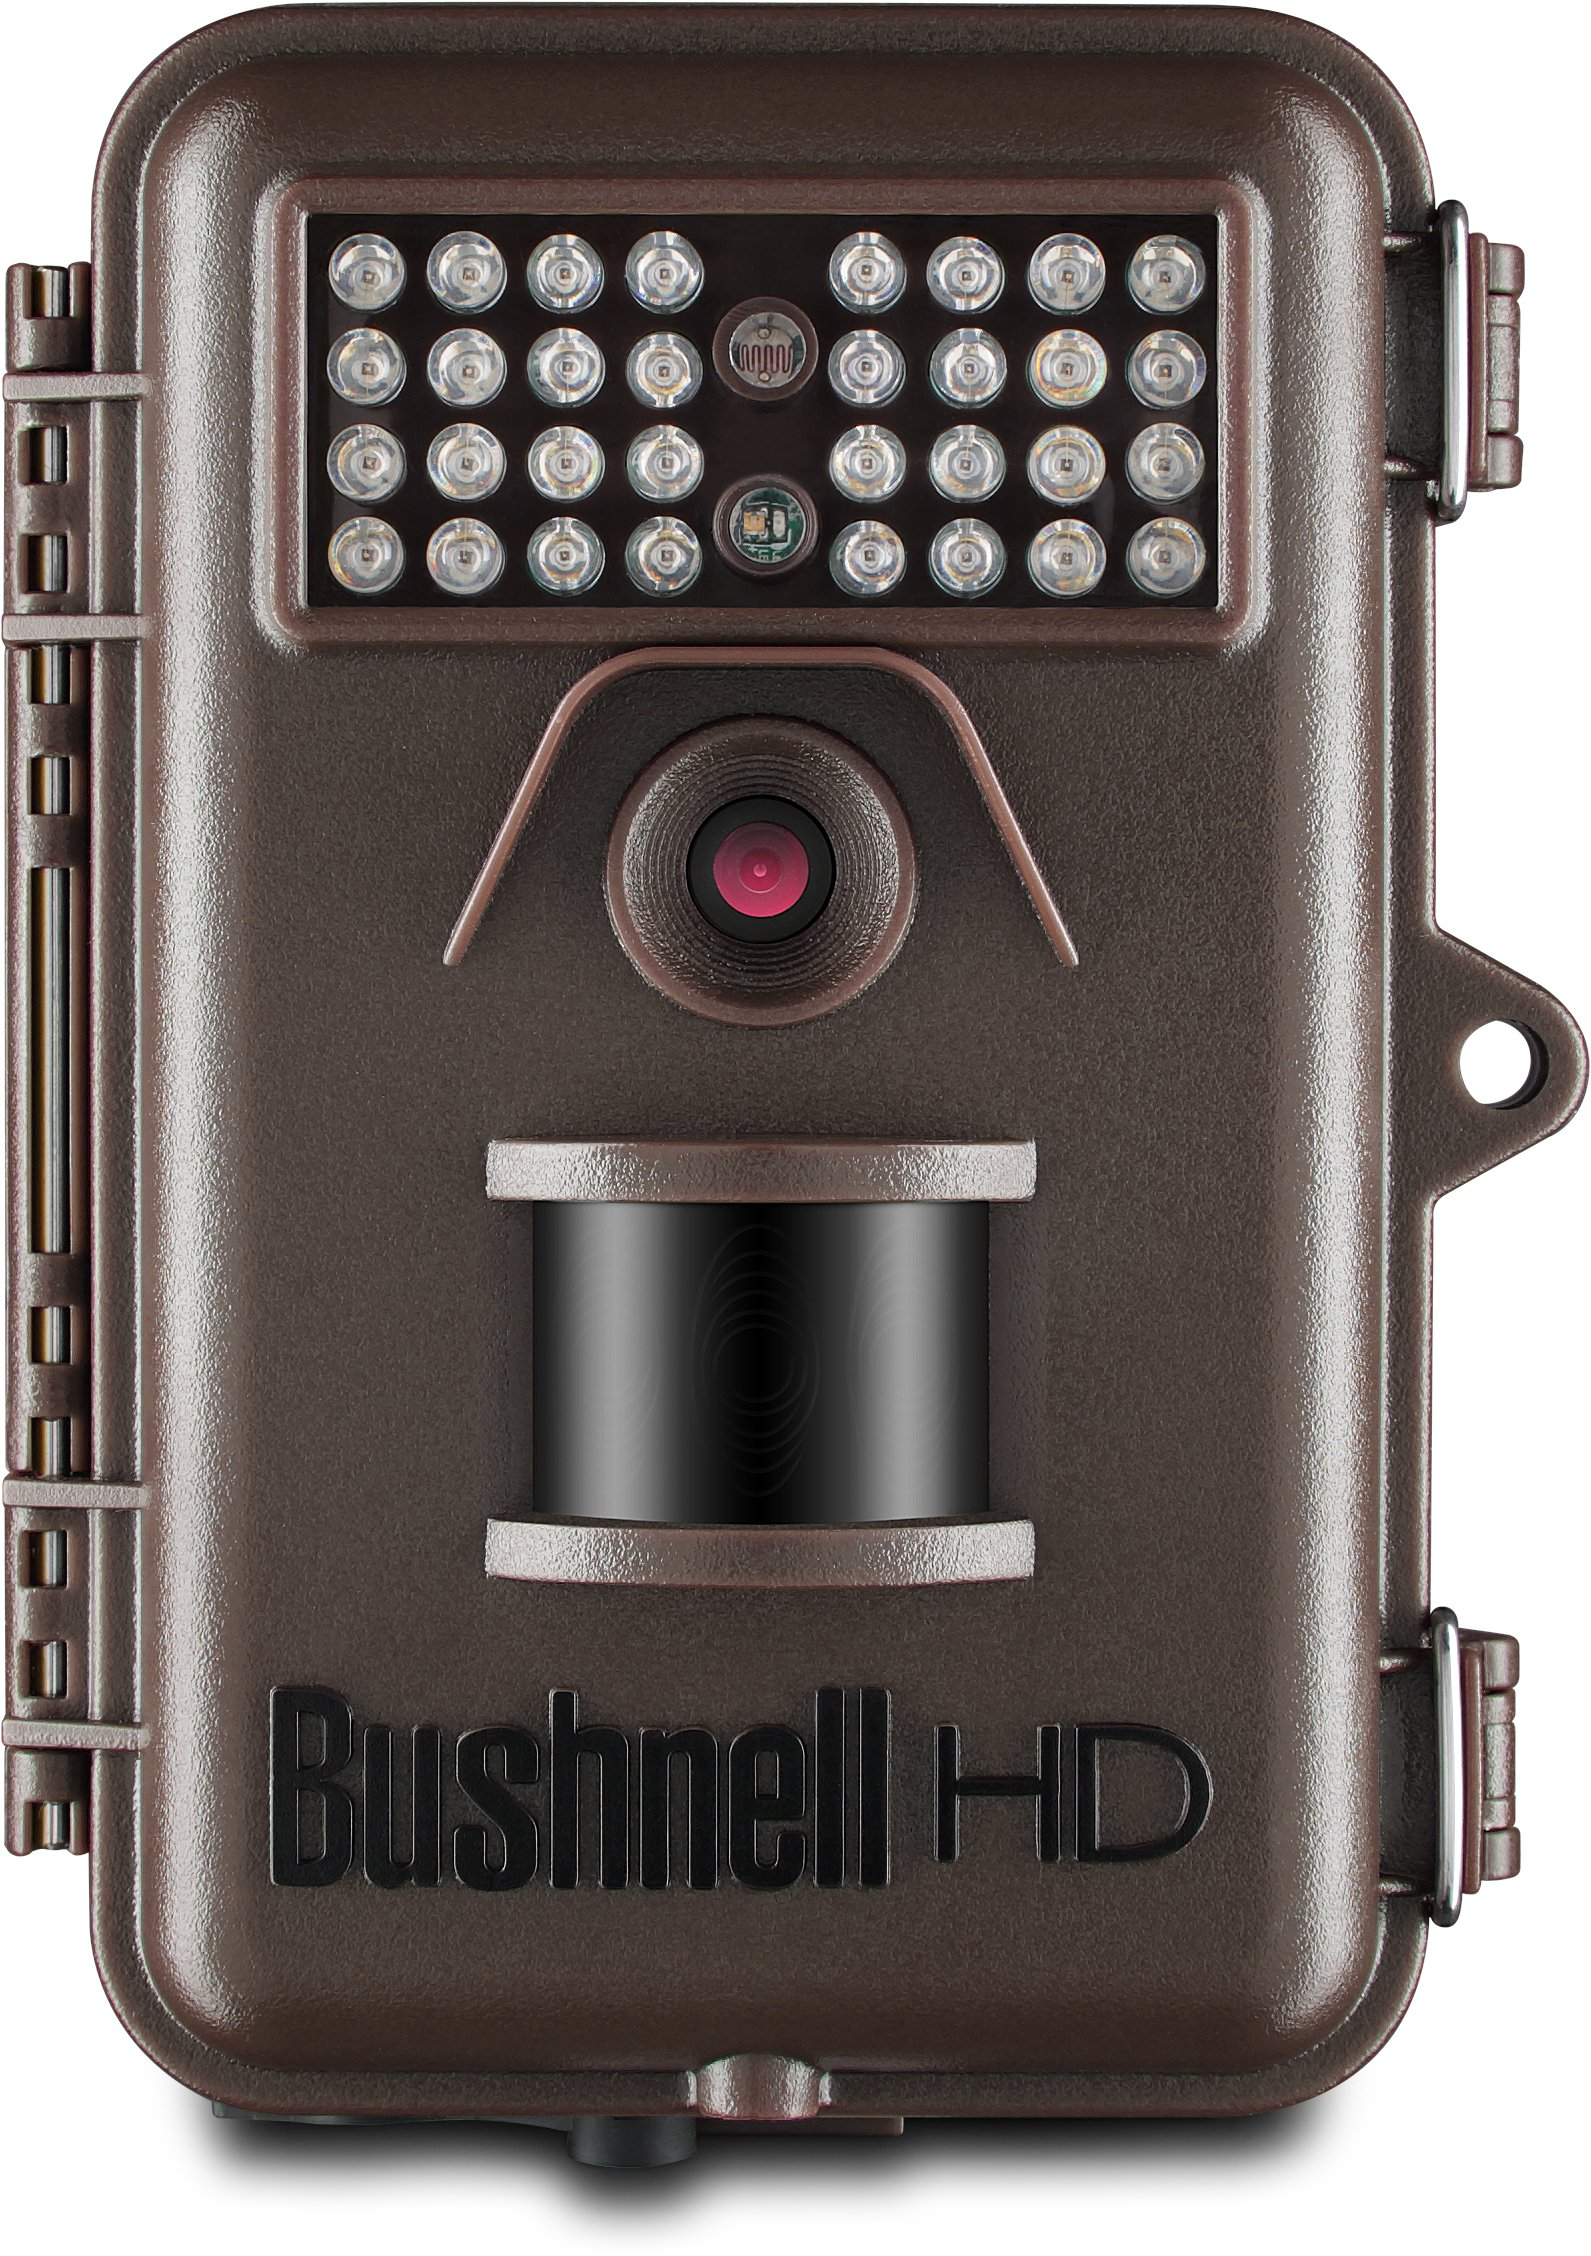 bushnell 12mp trophy cam hd essential low glow trail camera brown. Black Bedroom Furniture Sets. Home Design Ideas